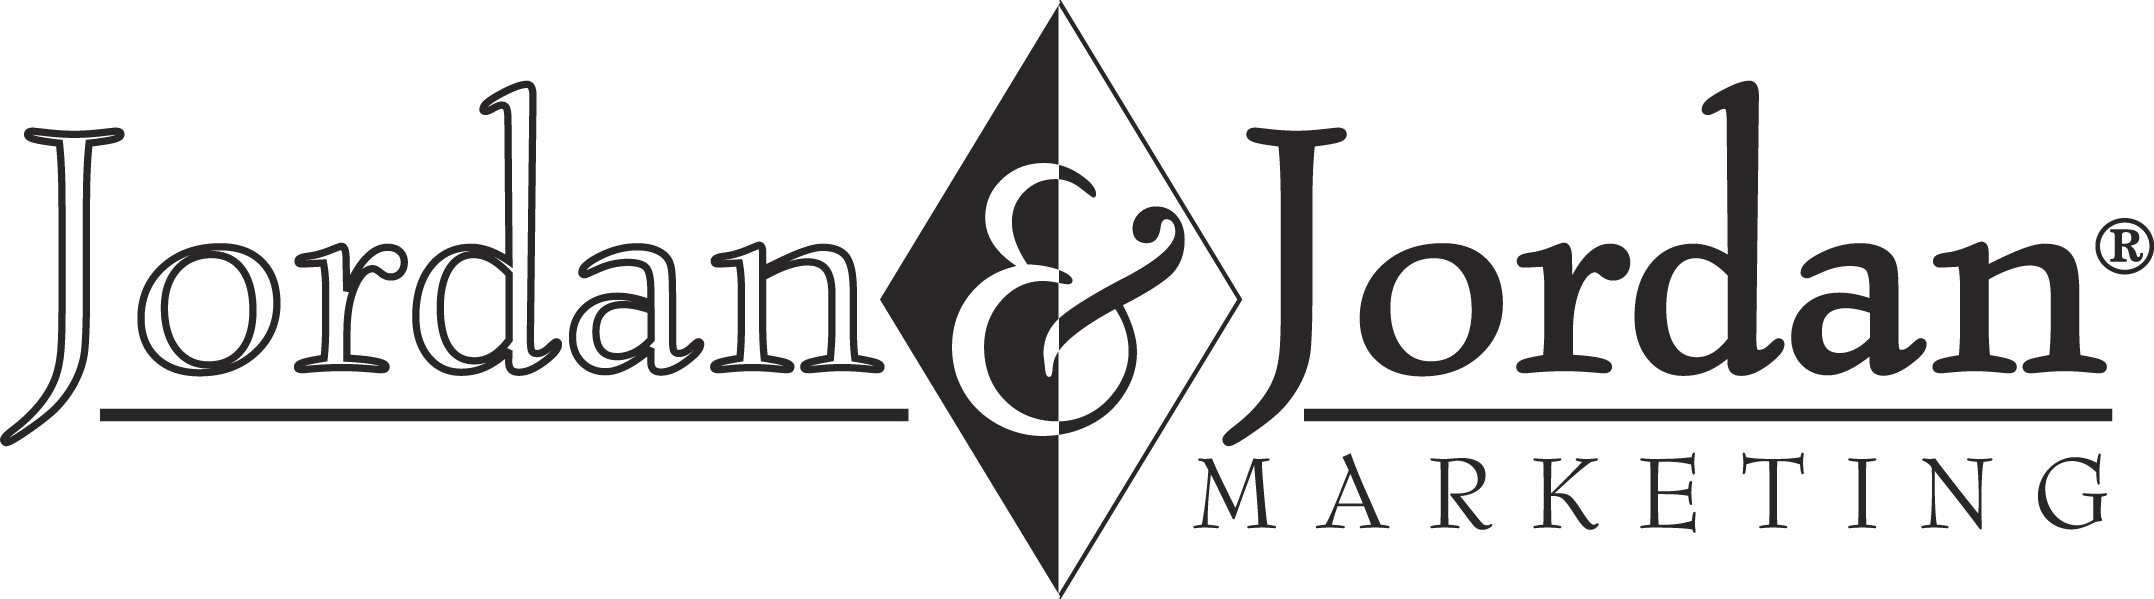 Jordan & Jordan Marketing